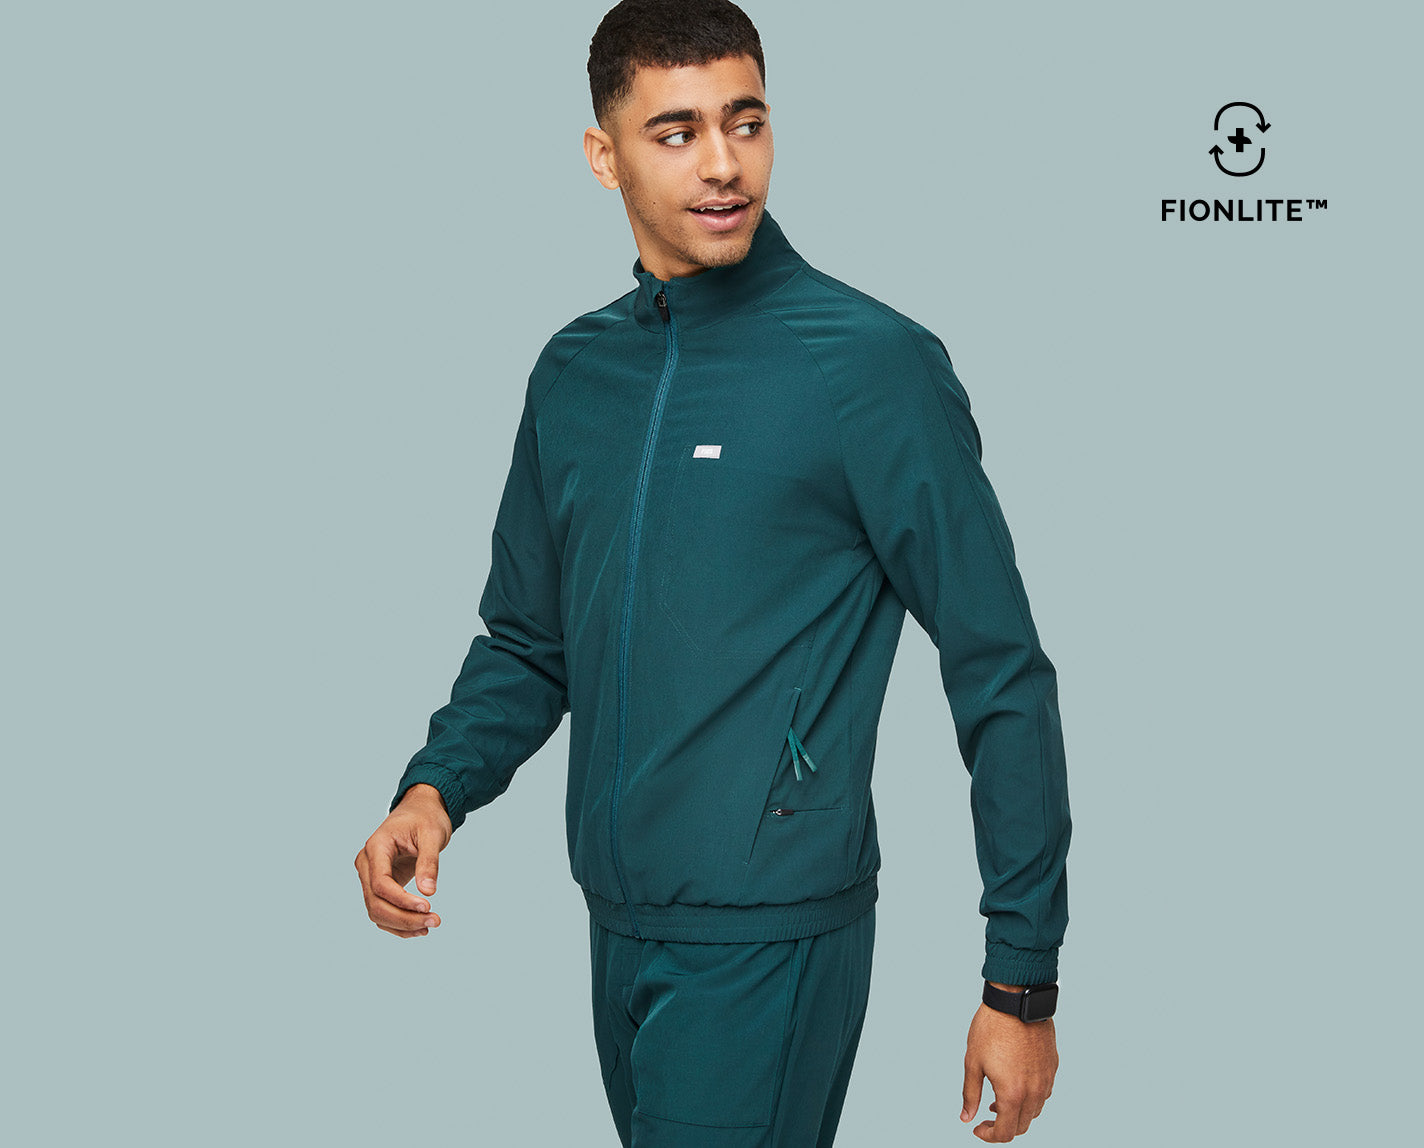 Look cool, stay warm. The Cobaki Scrub Jacket features a back yoke vent with mesh underlay for airflow, five functional pockets and is made with FIONLITE™, our new recycled content scrub fabric. Maybe the perfect jacket does exist.